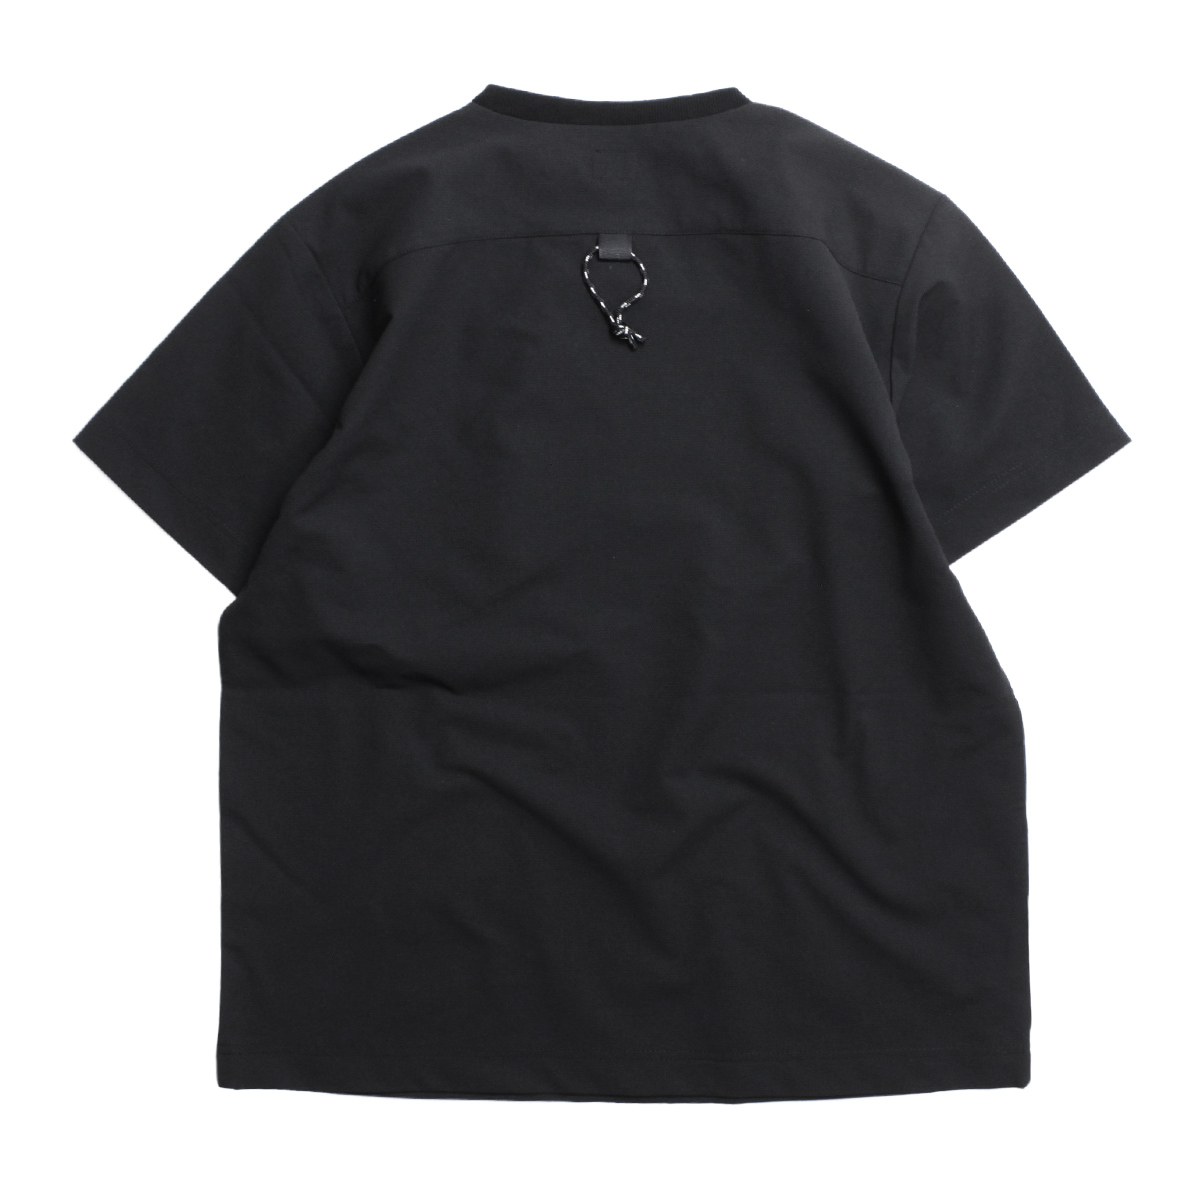 SOUYU OUTFITTERS ソーユーアウトフィッターズ SLOWLIFE TEE